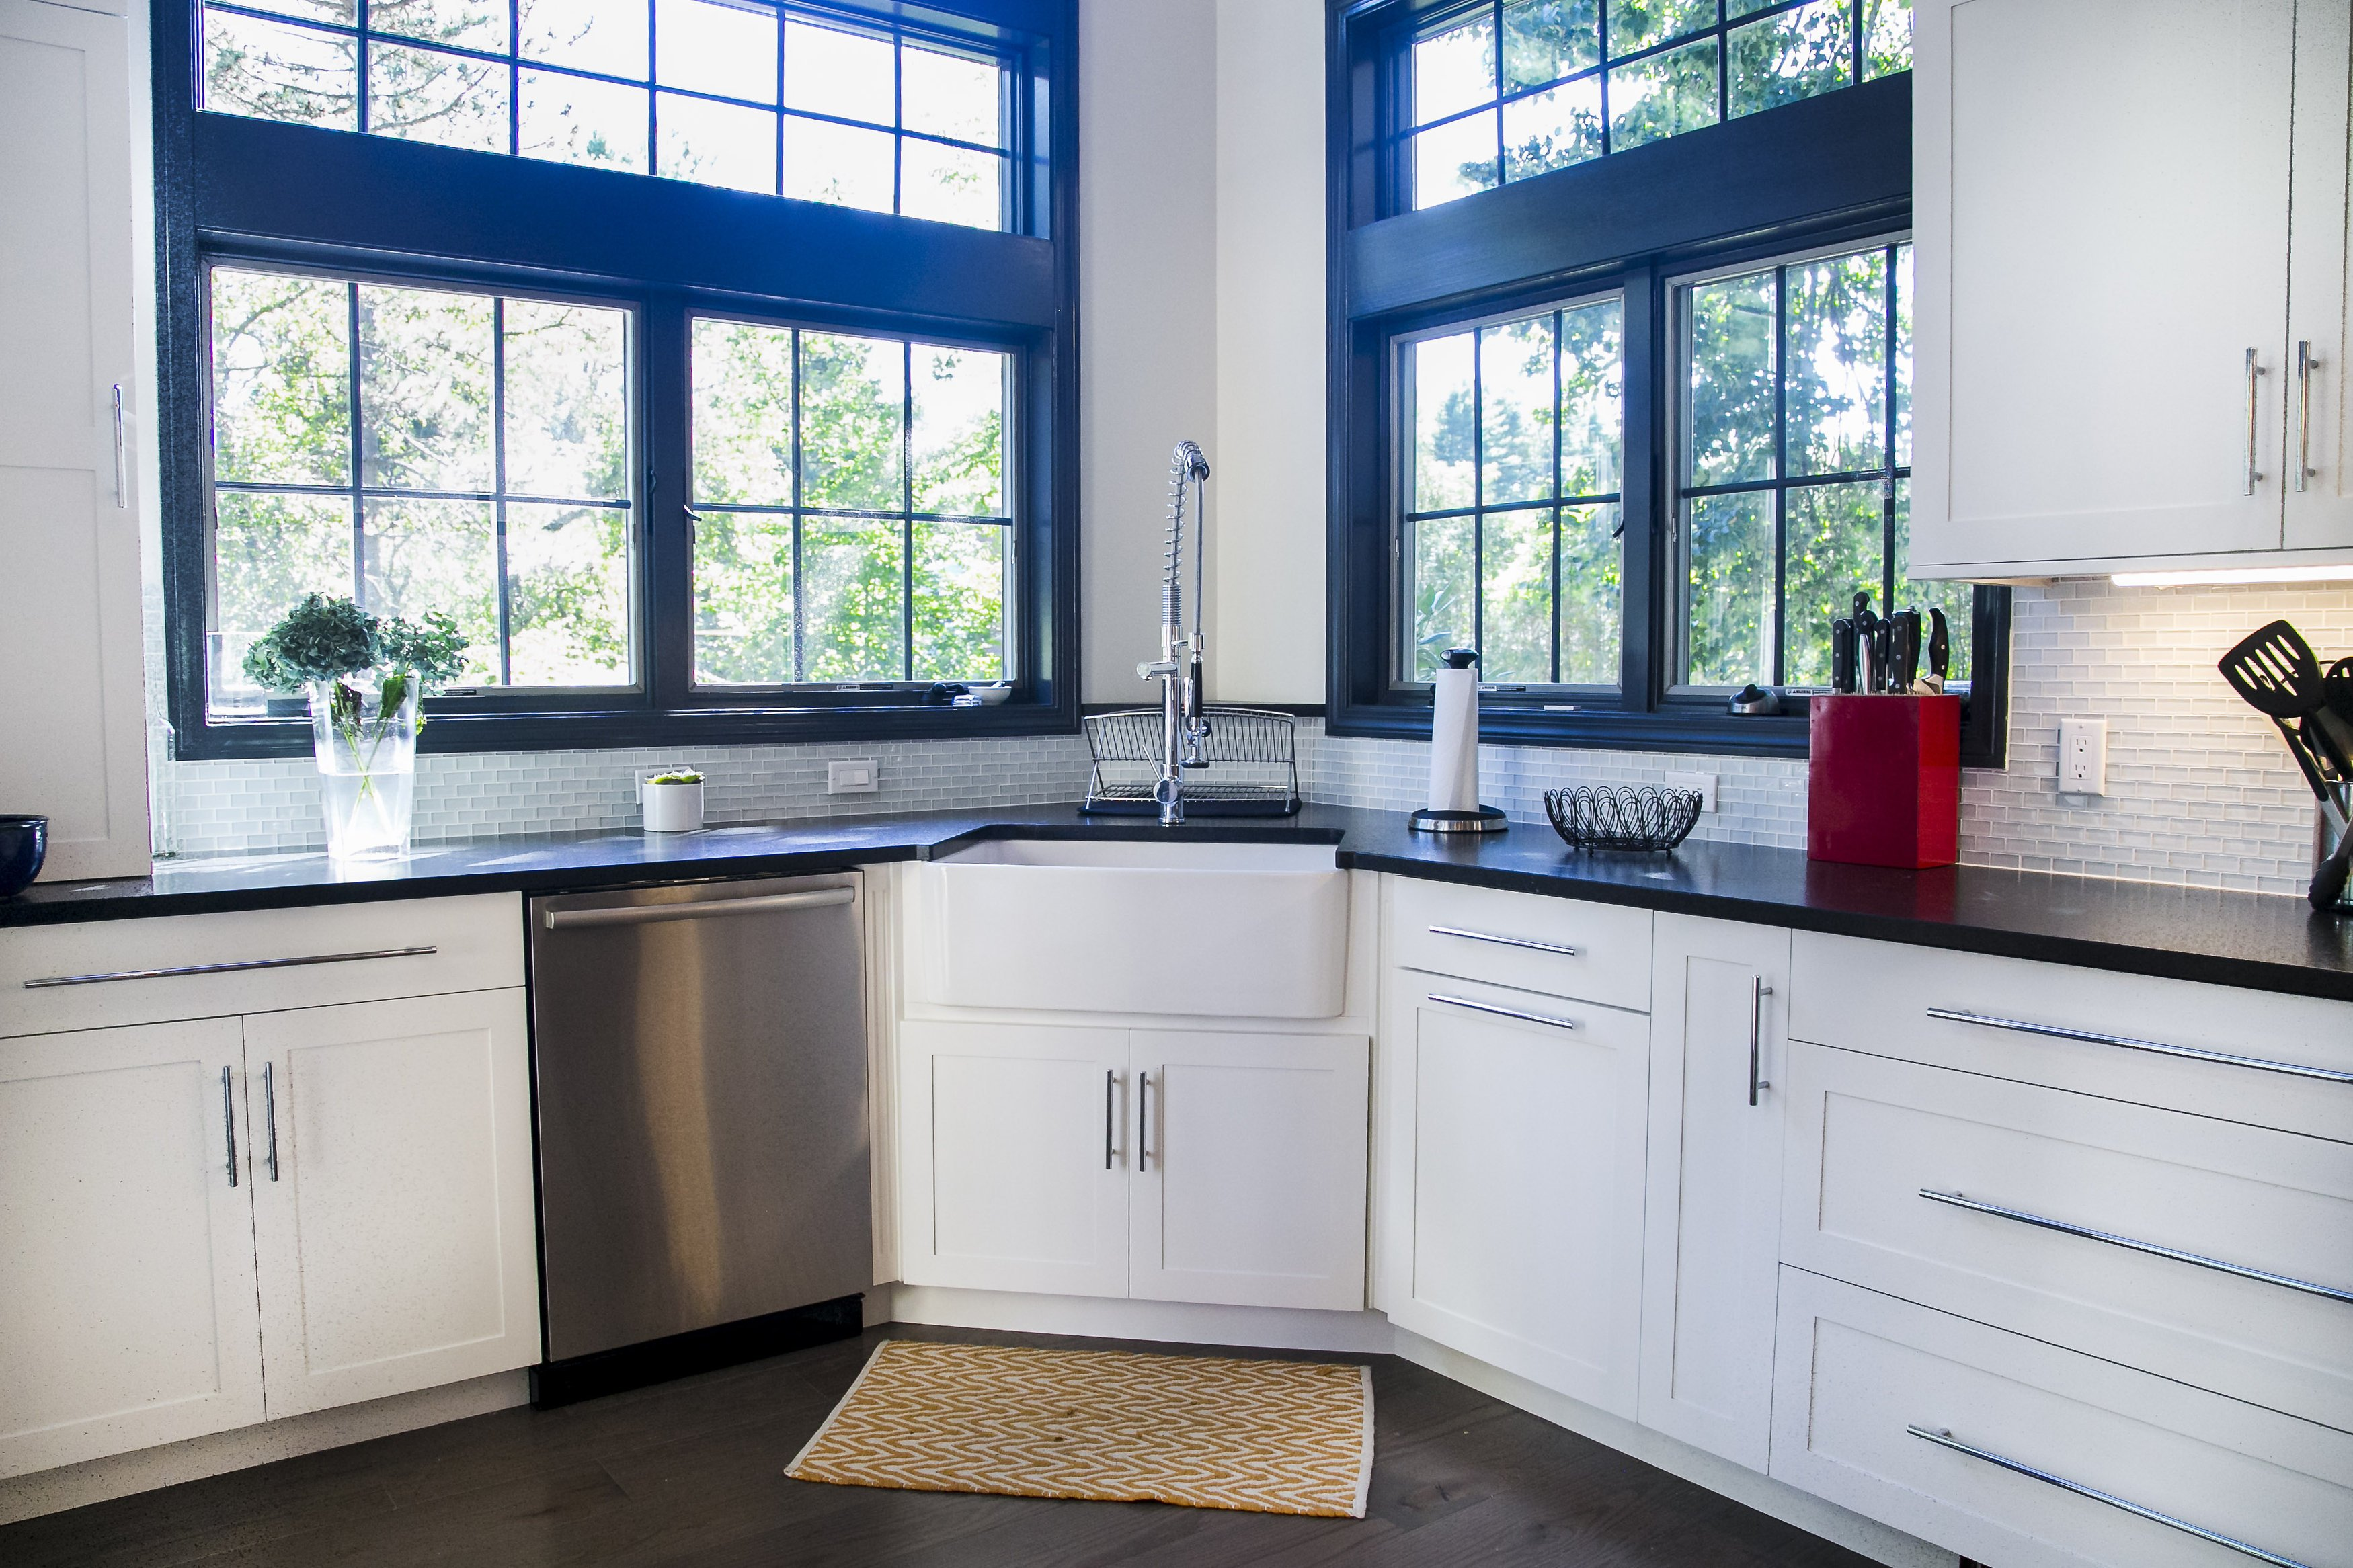 our process design your kitchen At Castle Kitchens we understand options when it comes to custom designing your kitchen or bathroom but we are confident you will find significant value